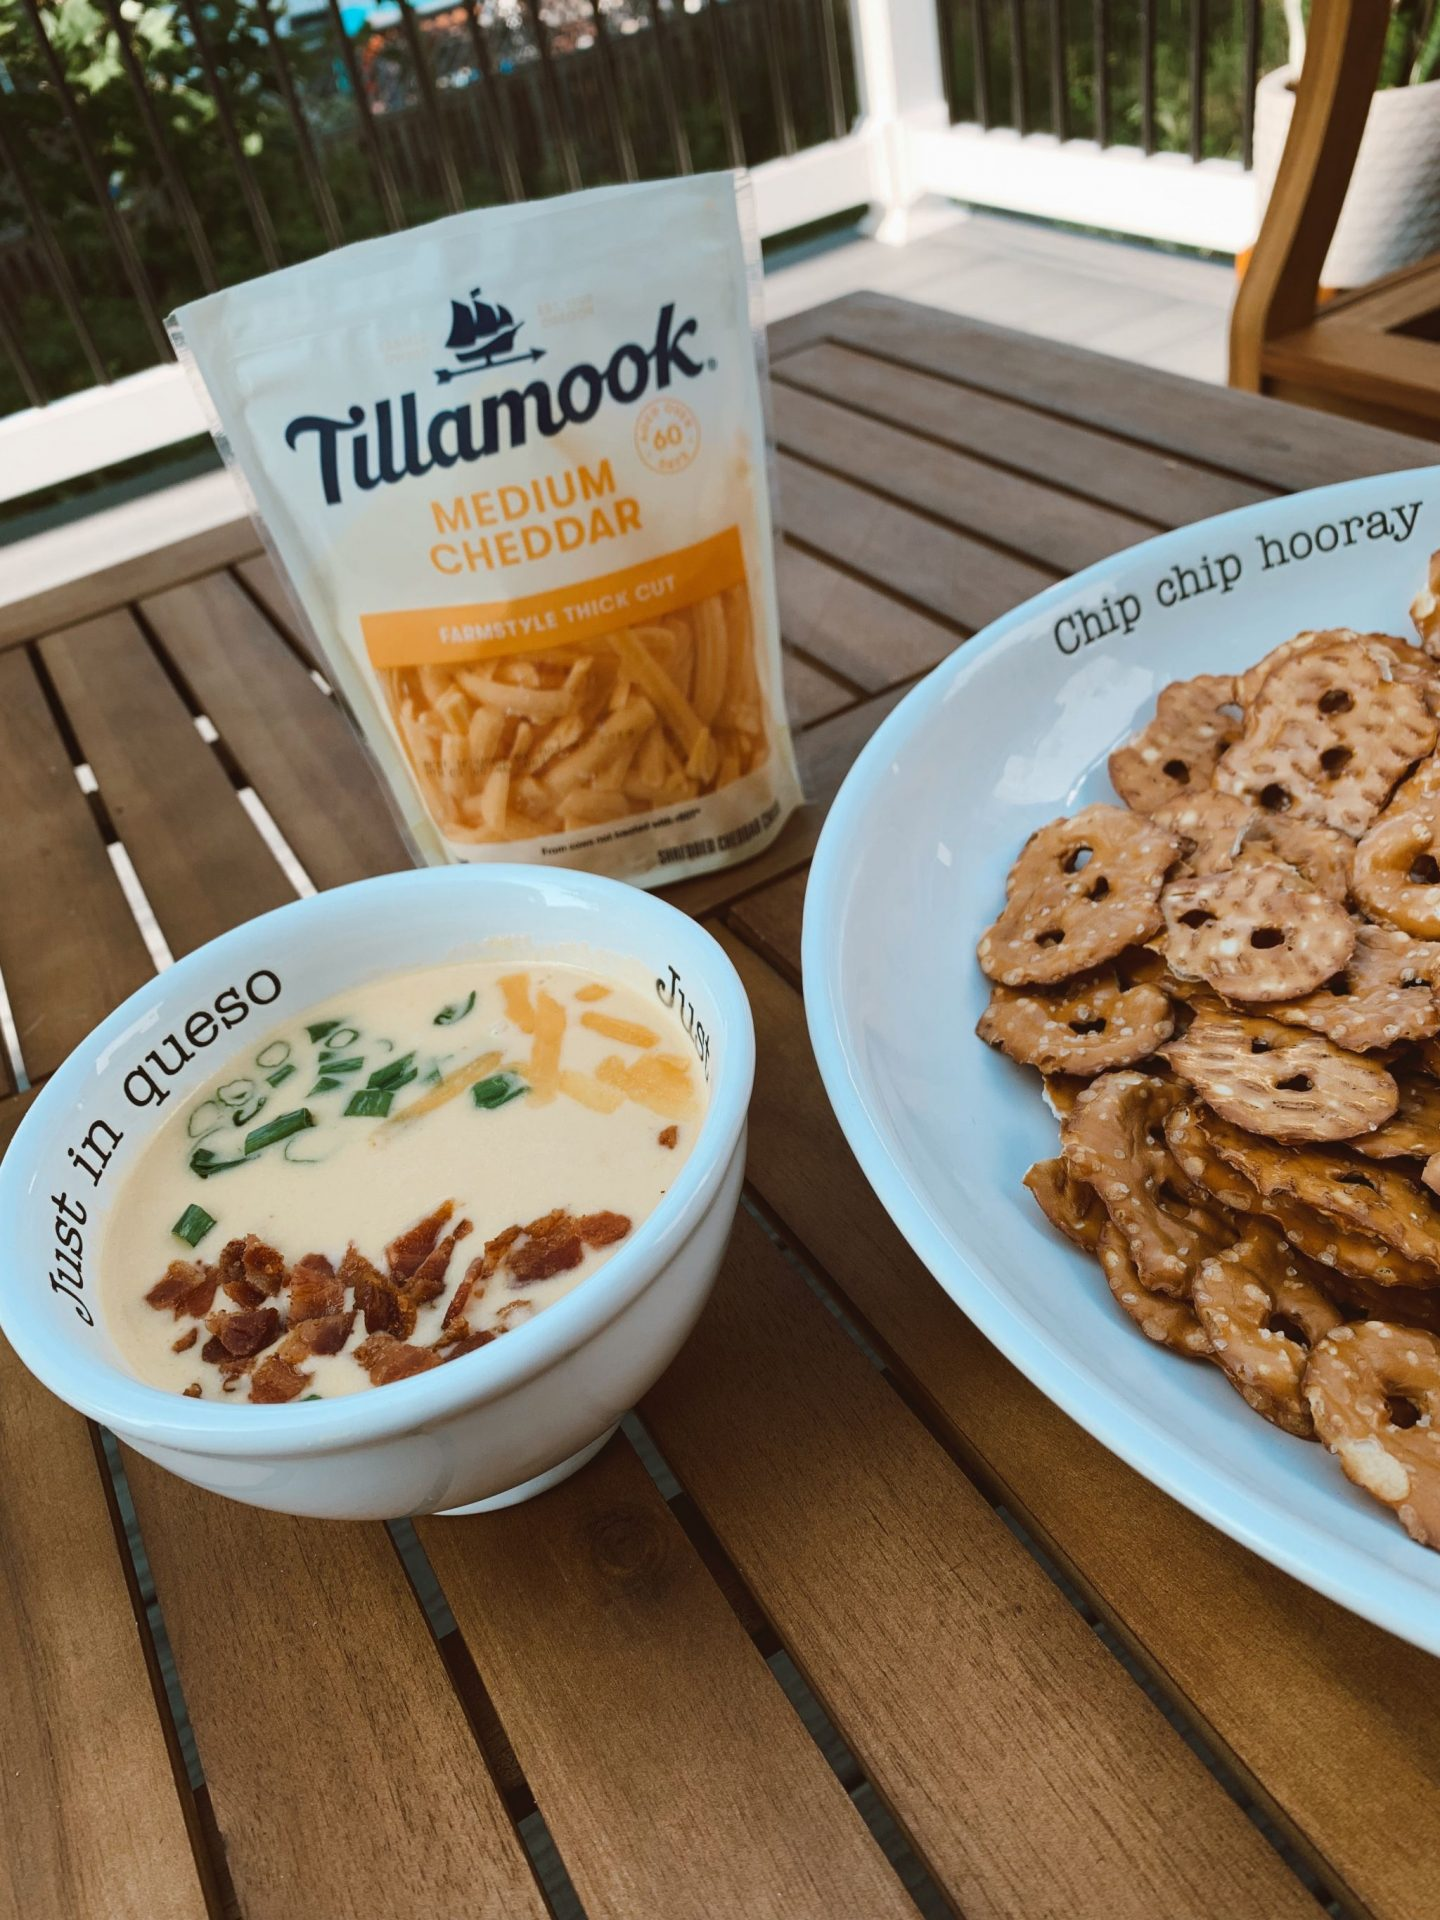 Dip Dip Hooray with Tillamook